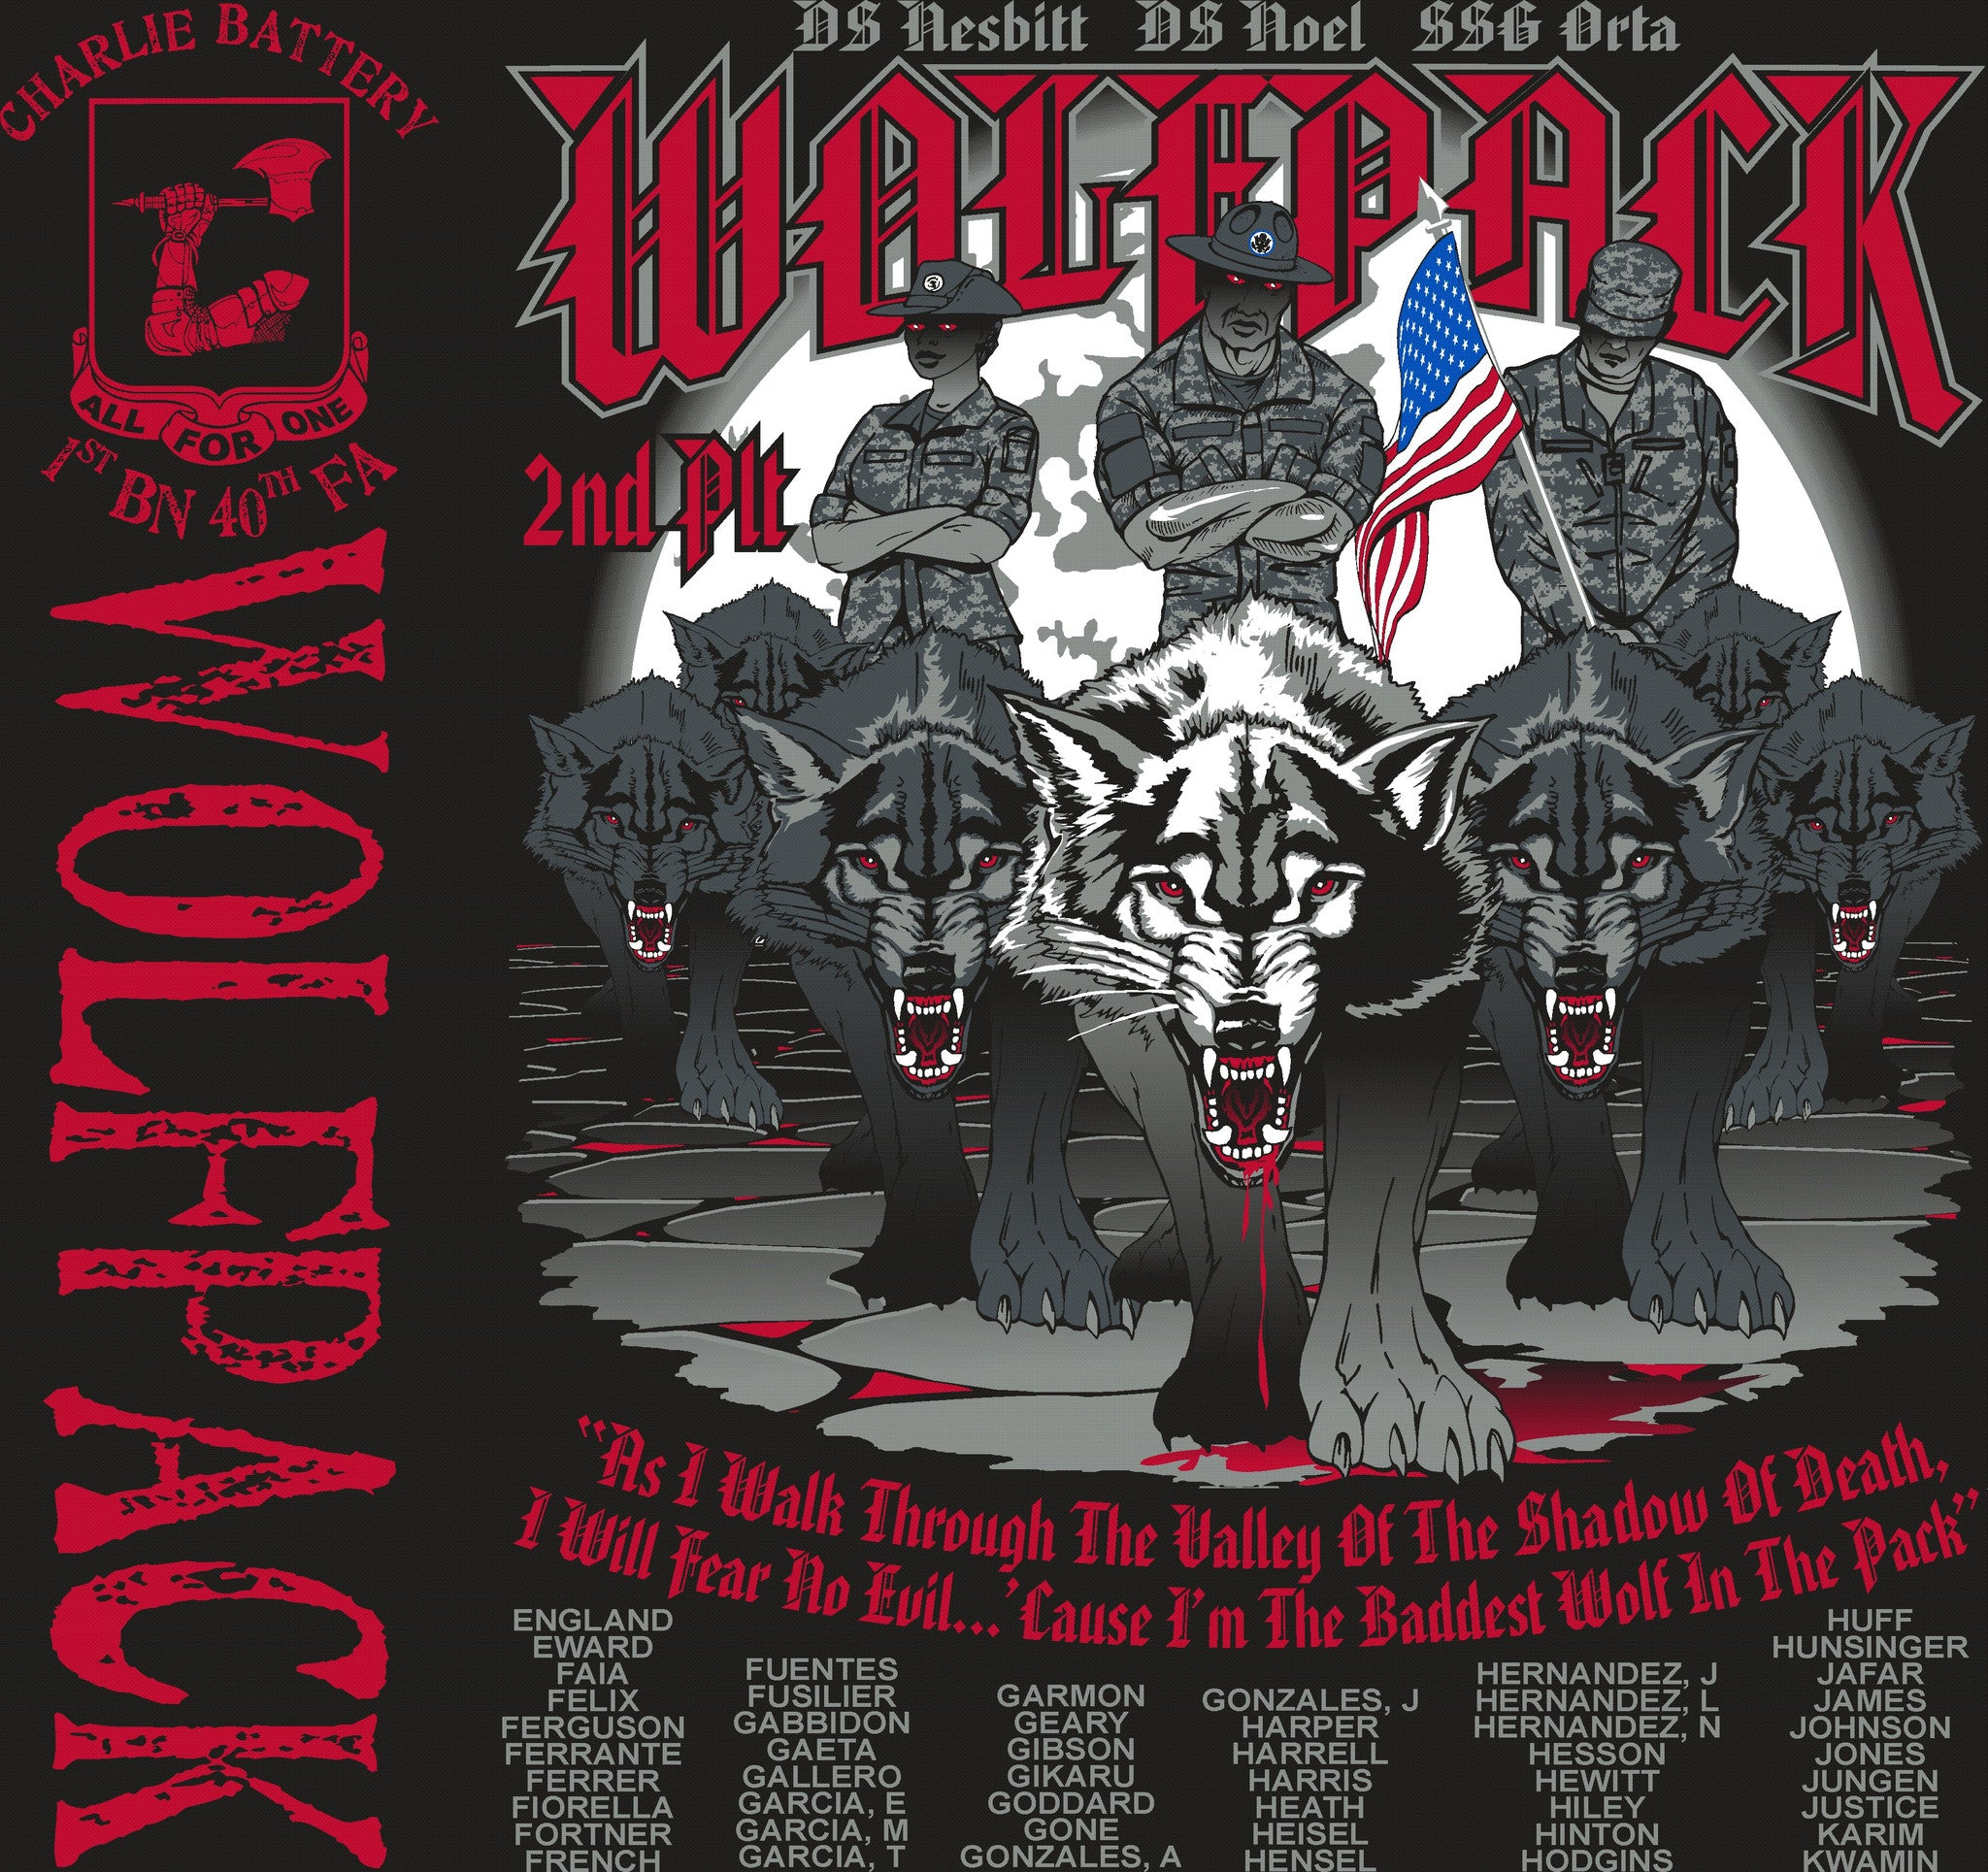 Platoon Shirts CHARLIE 1st 40th WOLFPACK OCT 2015